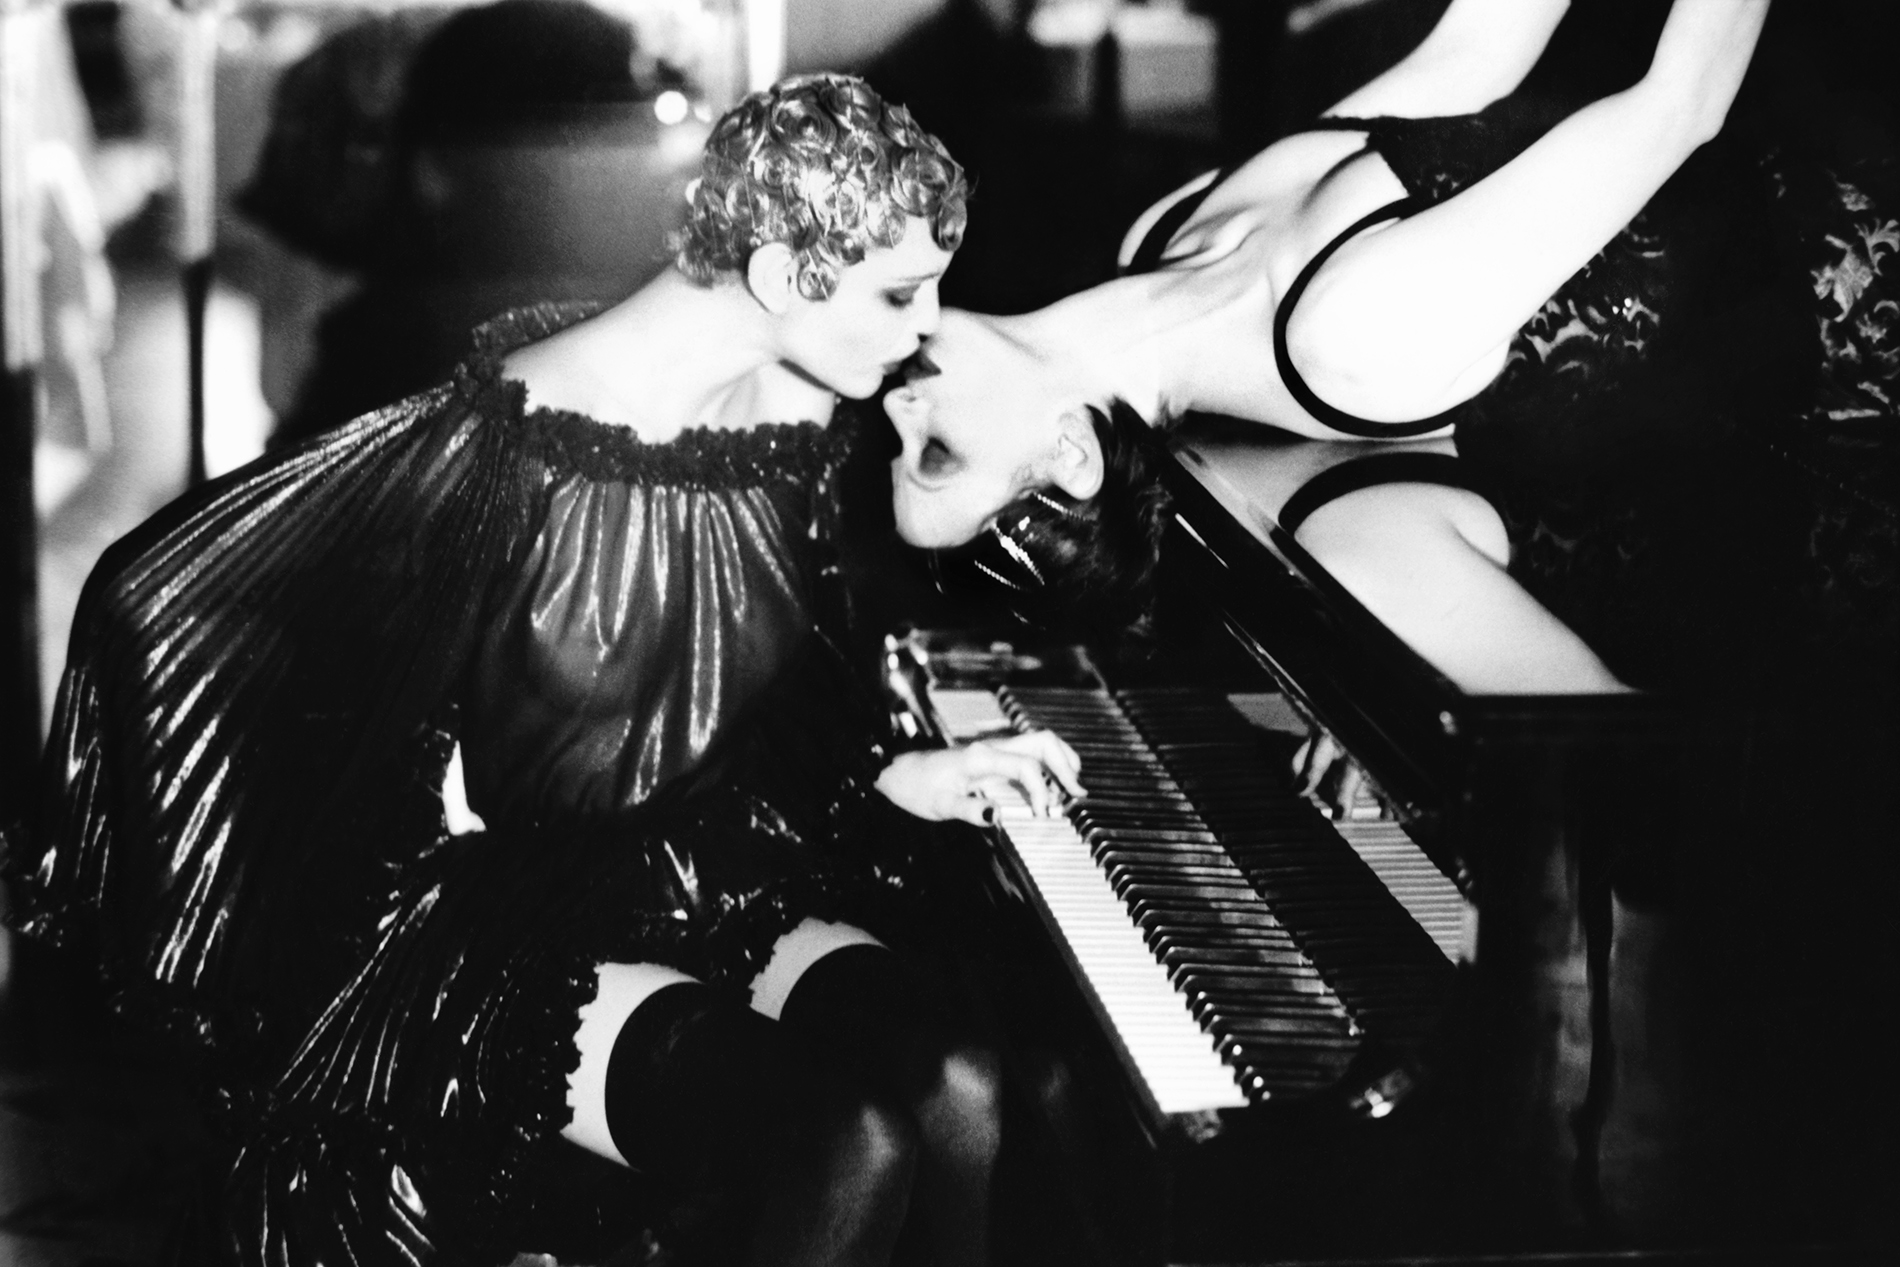 two women kissing on a grand piano